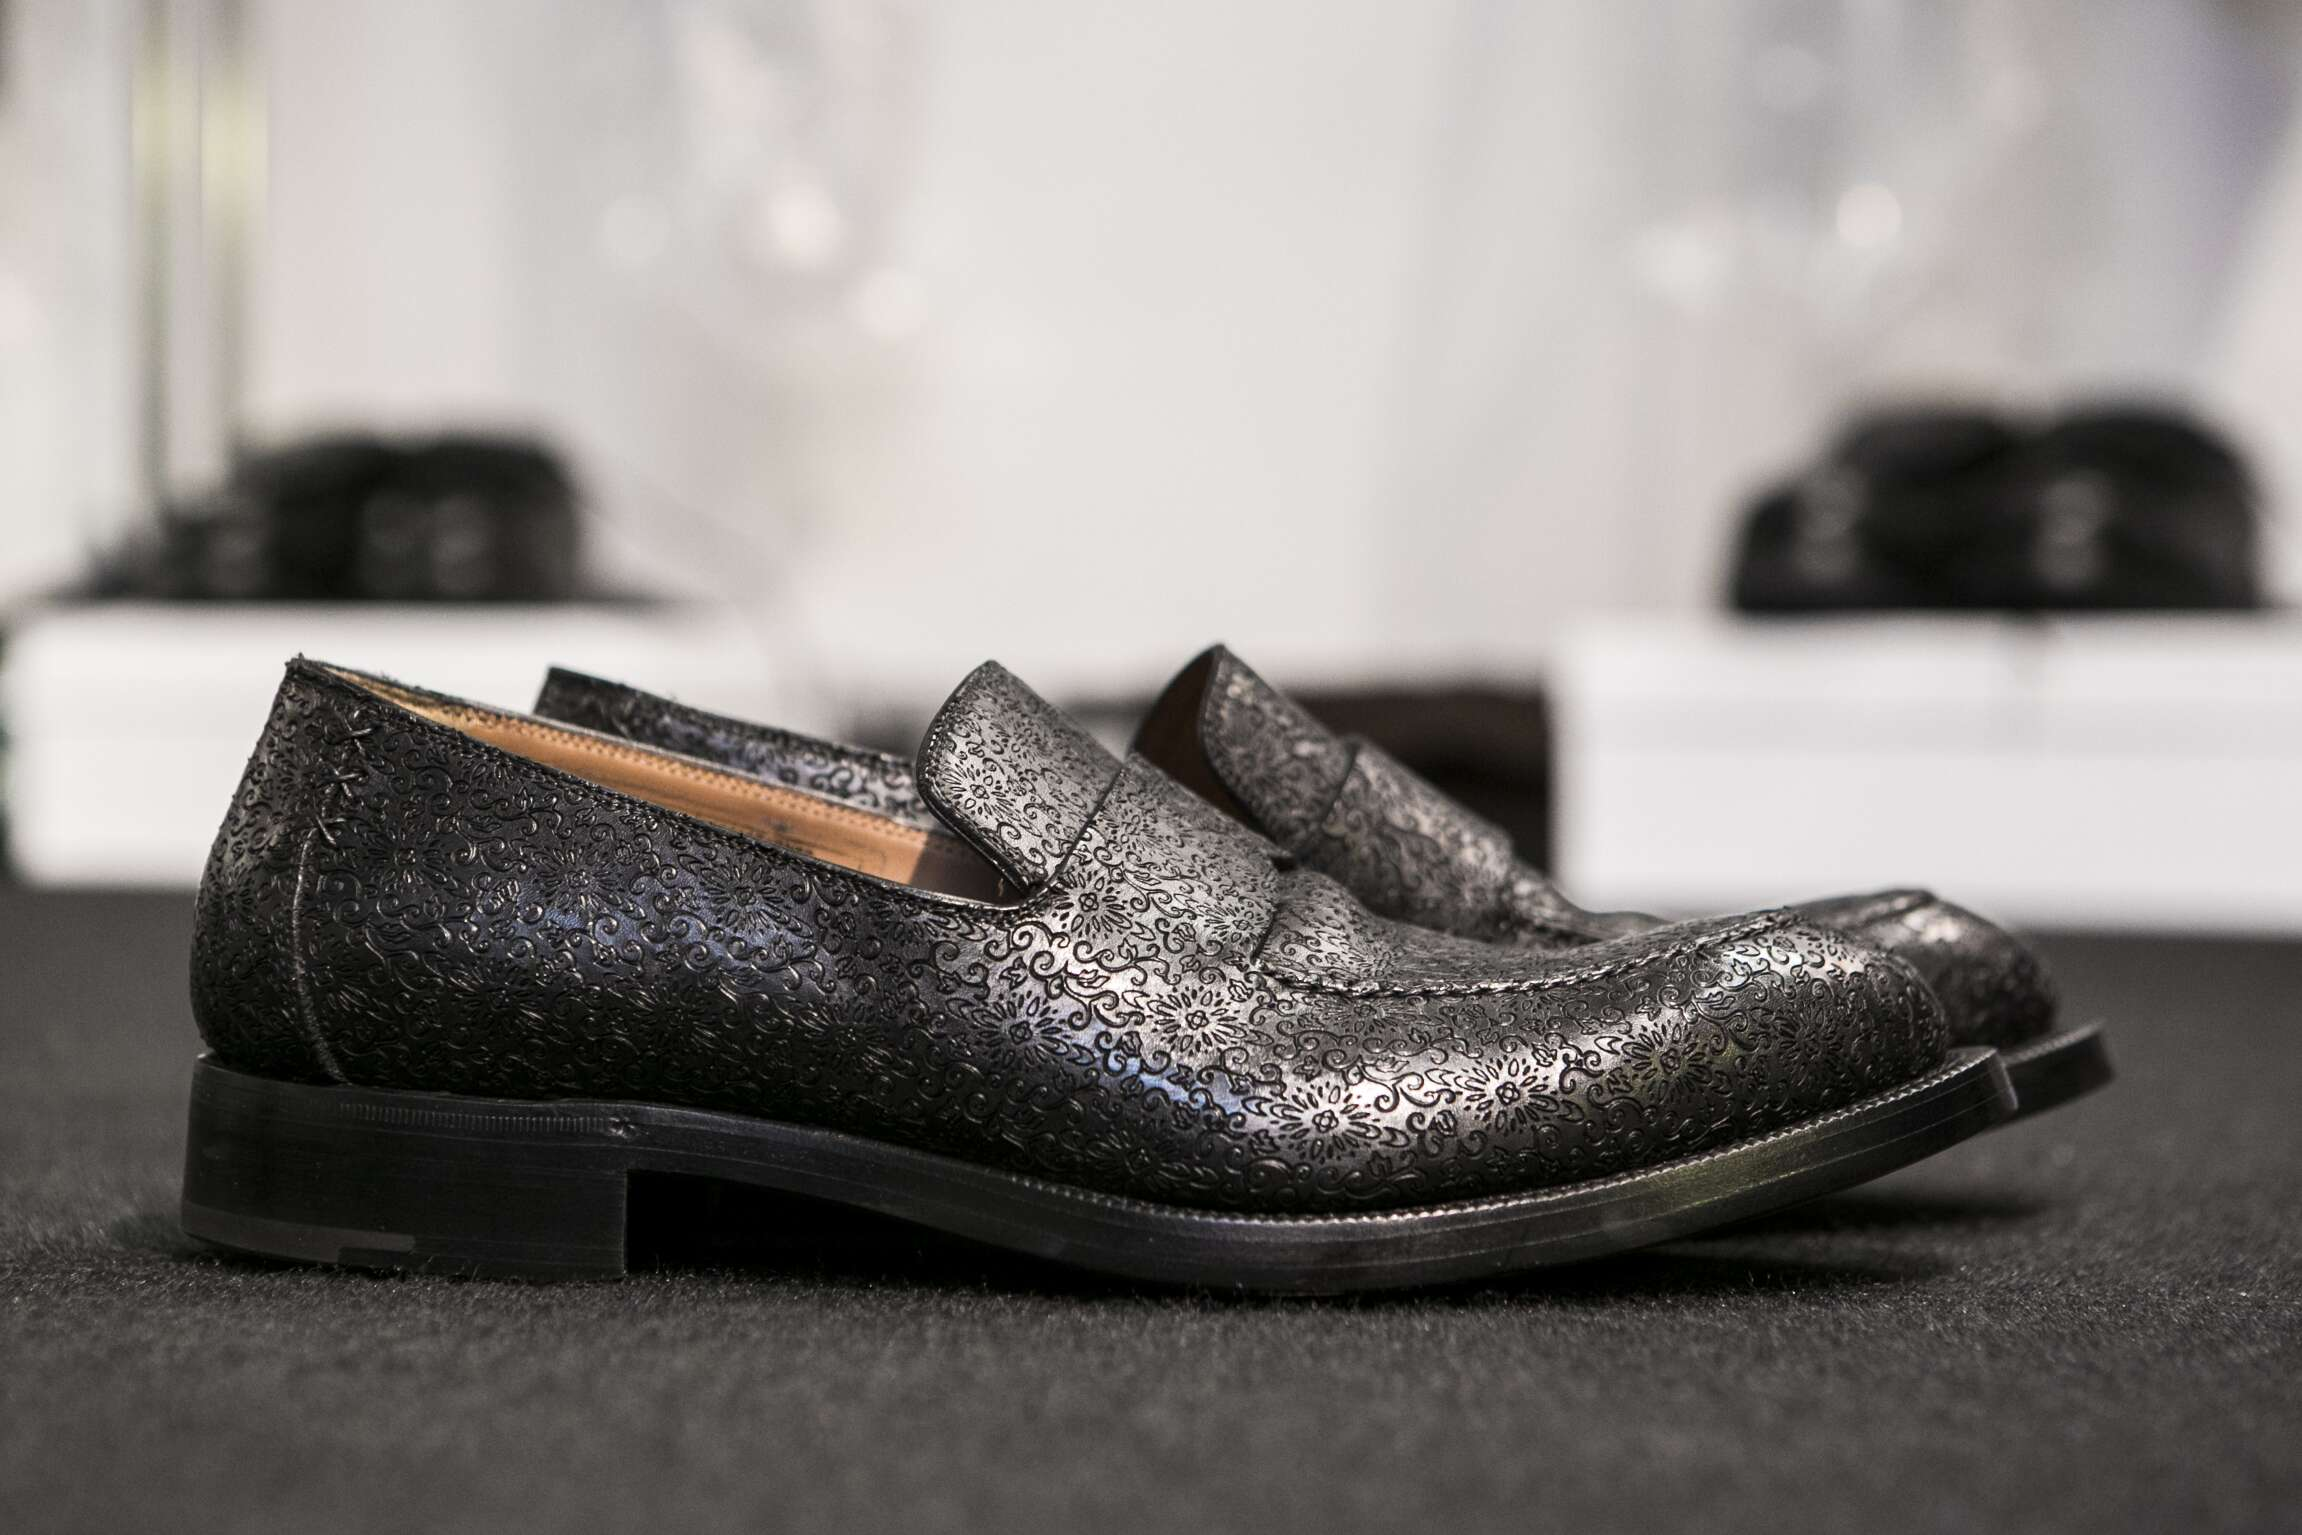 Backstage Ermenegildo Zegna Couture Shoes Detail